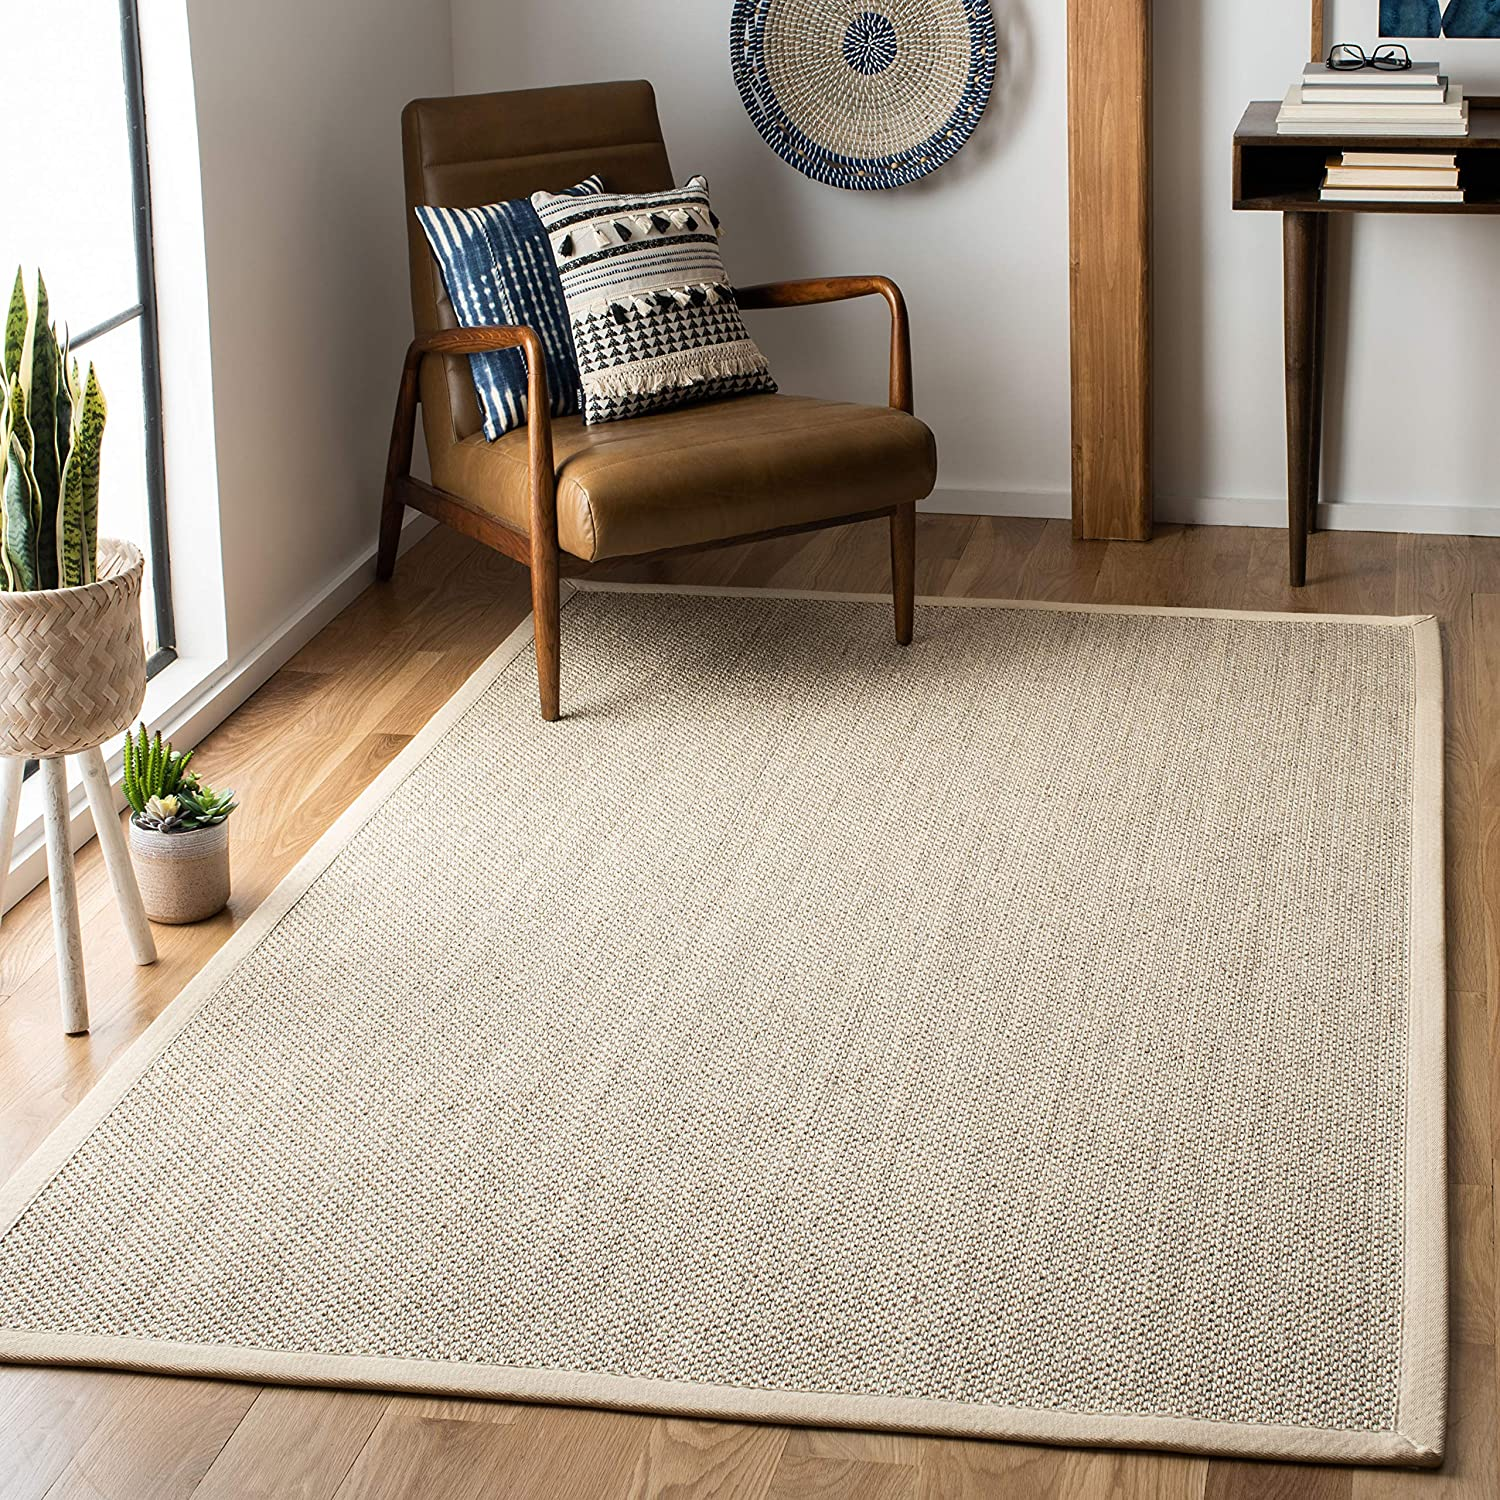 Safavieh Natural Fiber Collection NF143C Marble and Beige Sisal Area Rug (6' x 9')